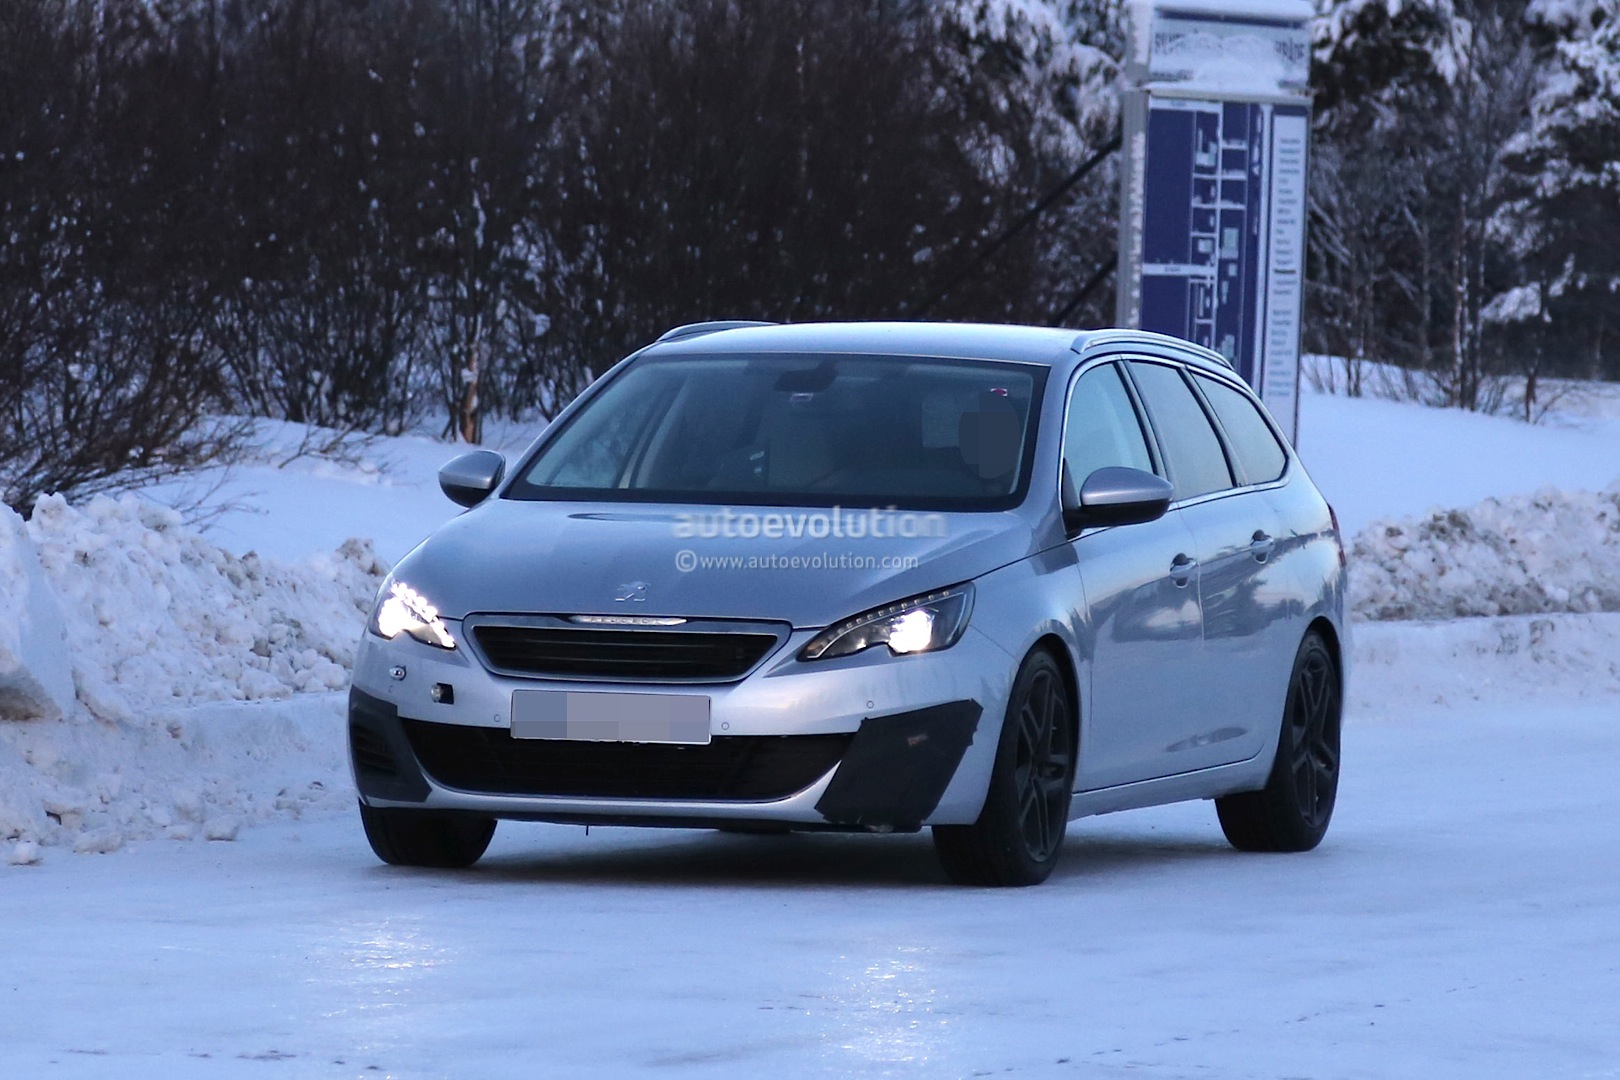 peugeot expanding 308 family with gti sw estate. Black Bedroom Furniture Sets. Home Design Ideas